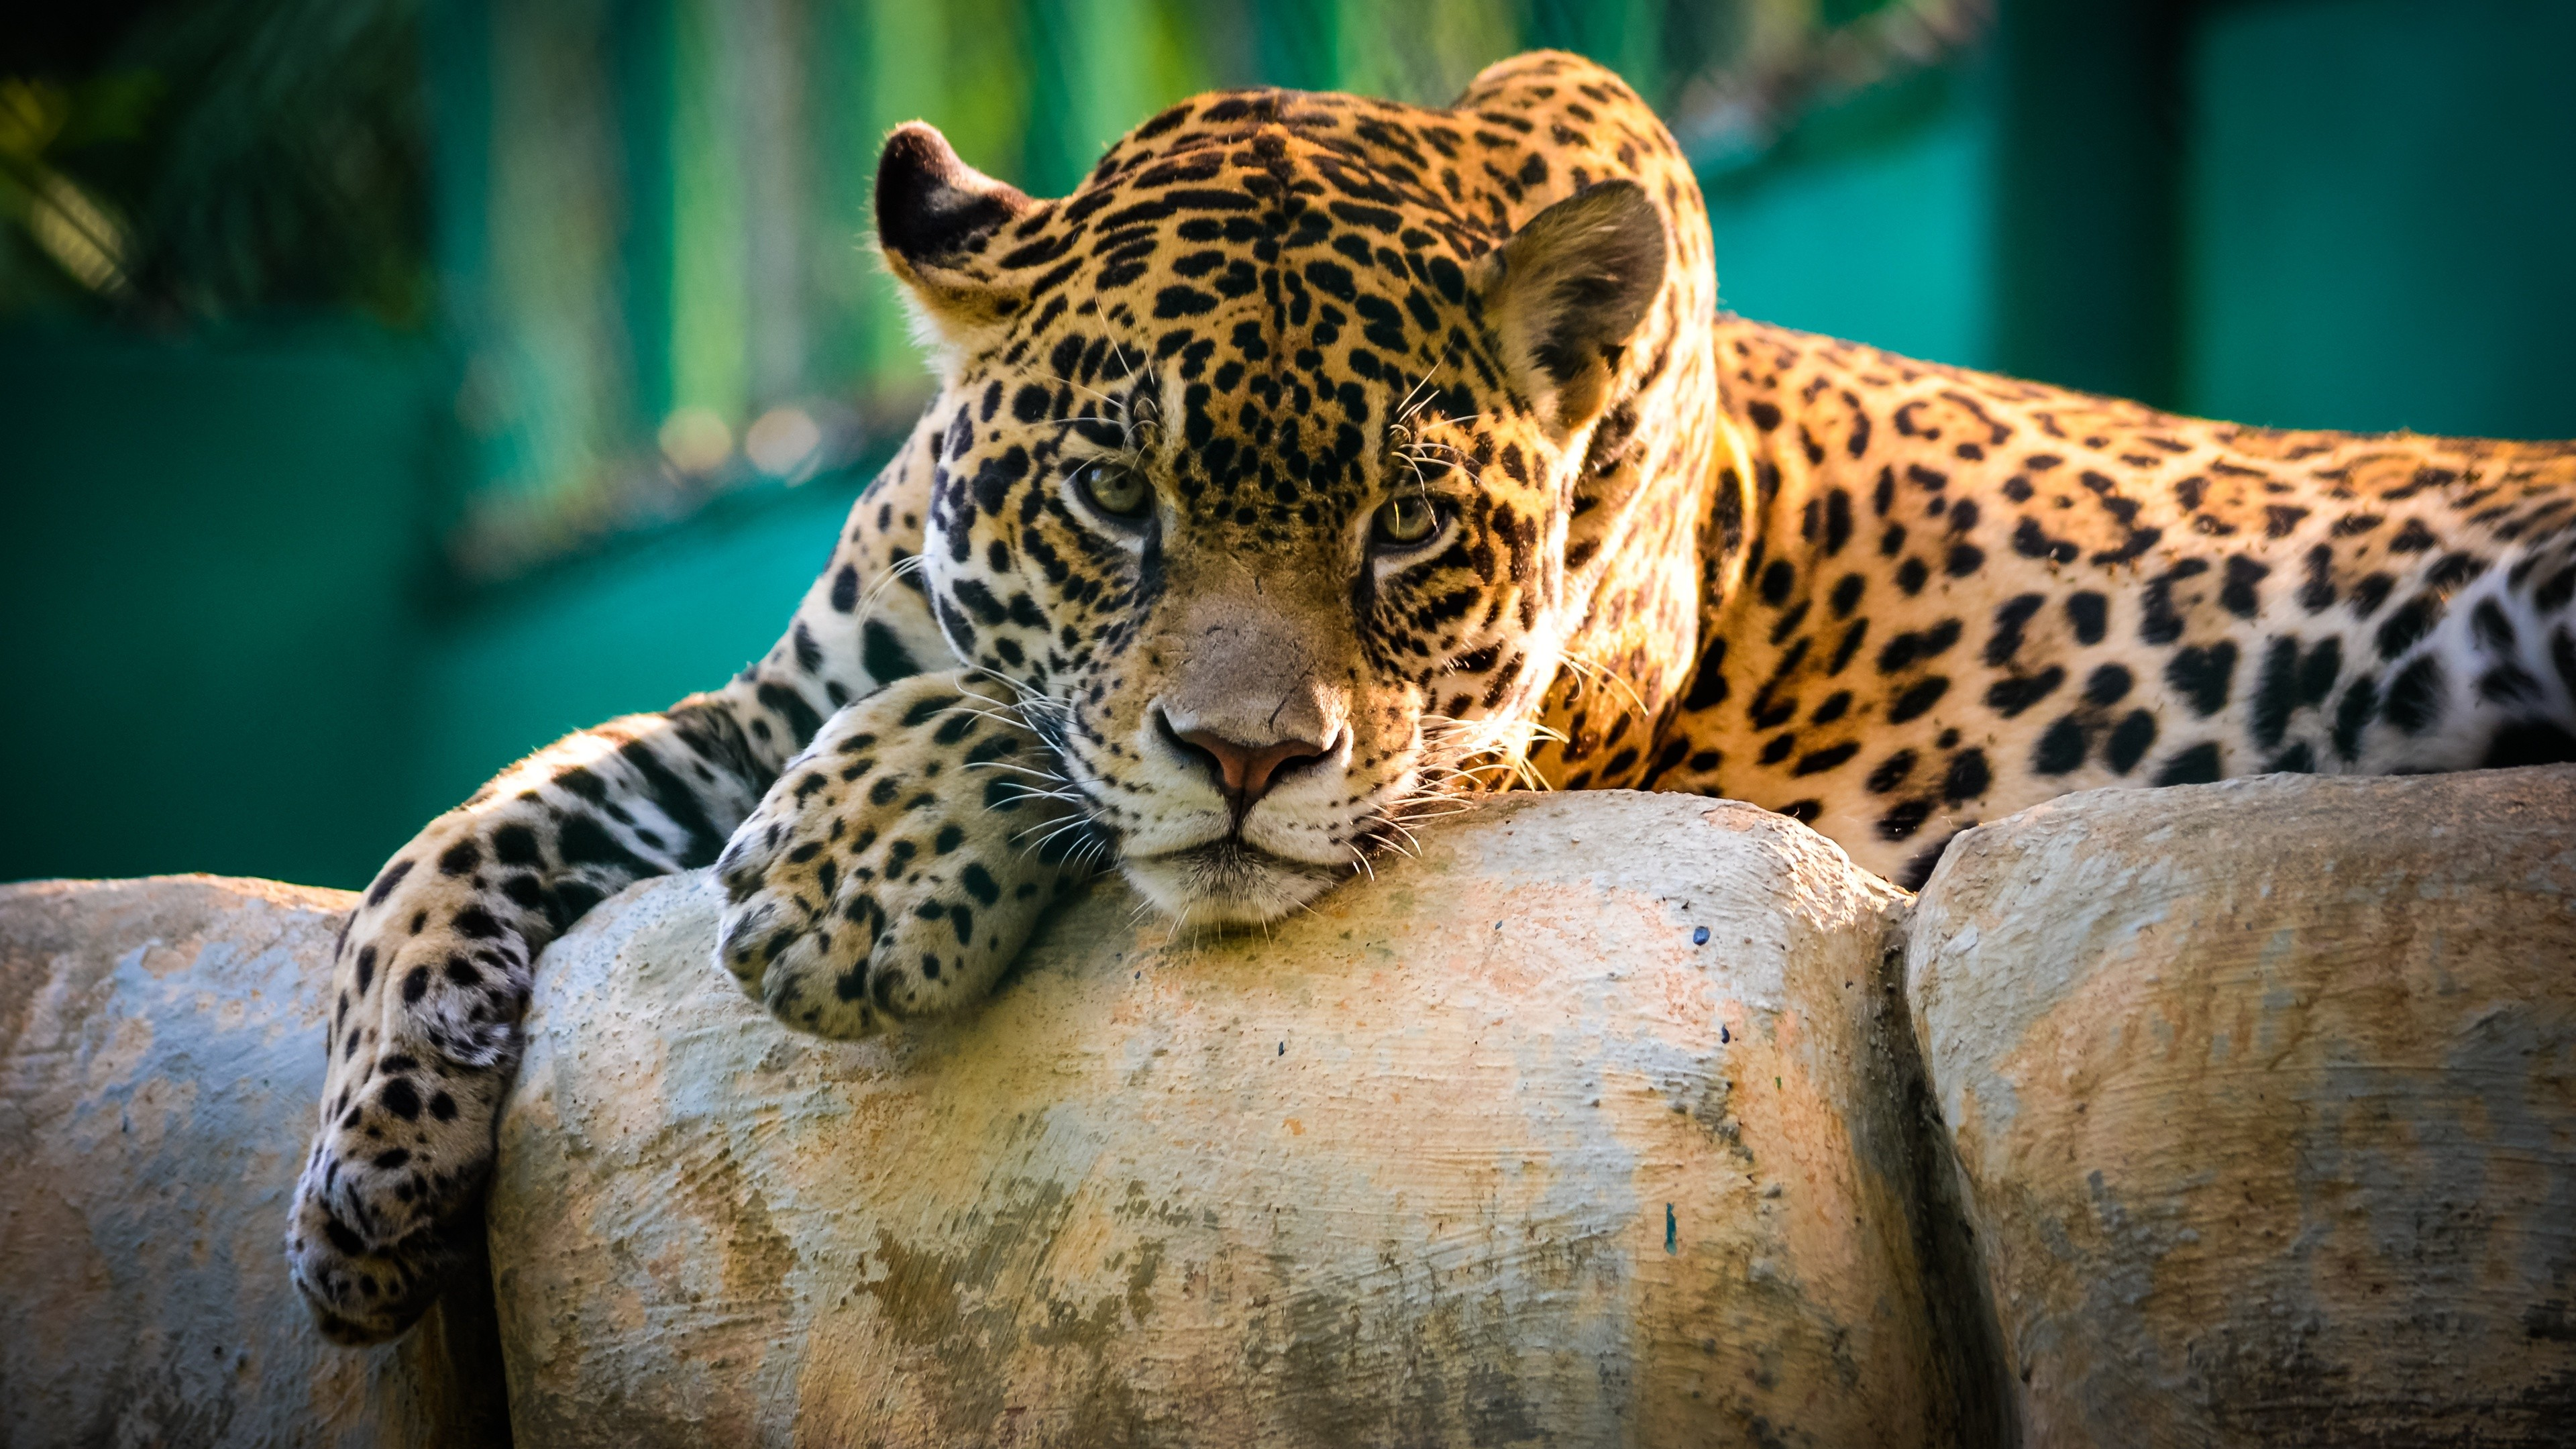 Image of: Horse Jaguar Animal Wallpaper 52dazhew Jaguar Animal Wallpaper For Desktop And Mobiles 4k Ultra Hd Hd